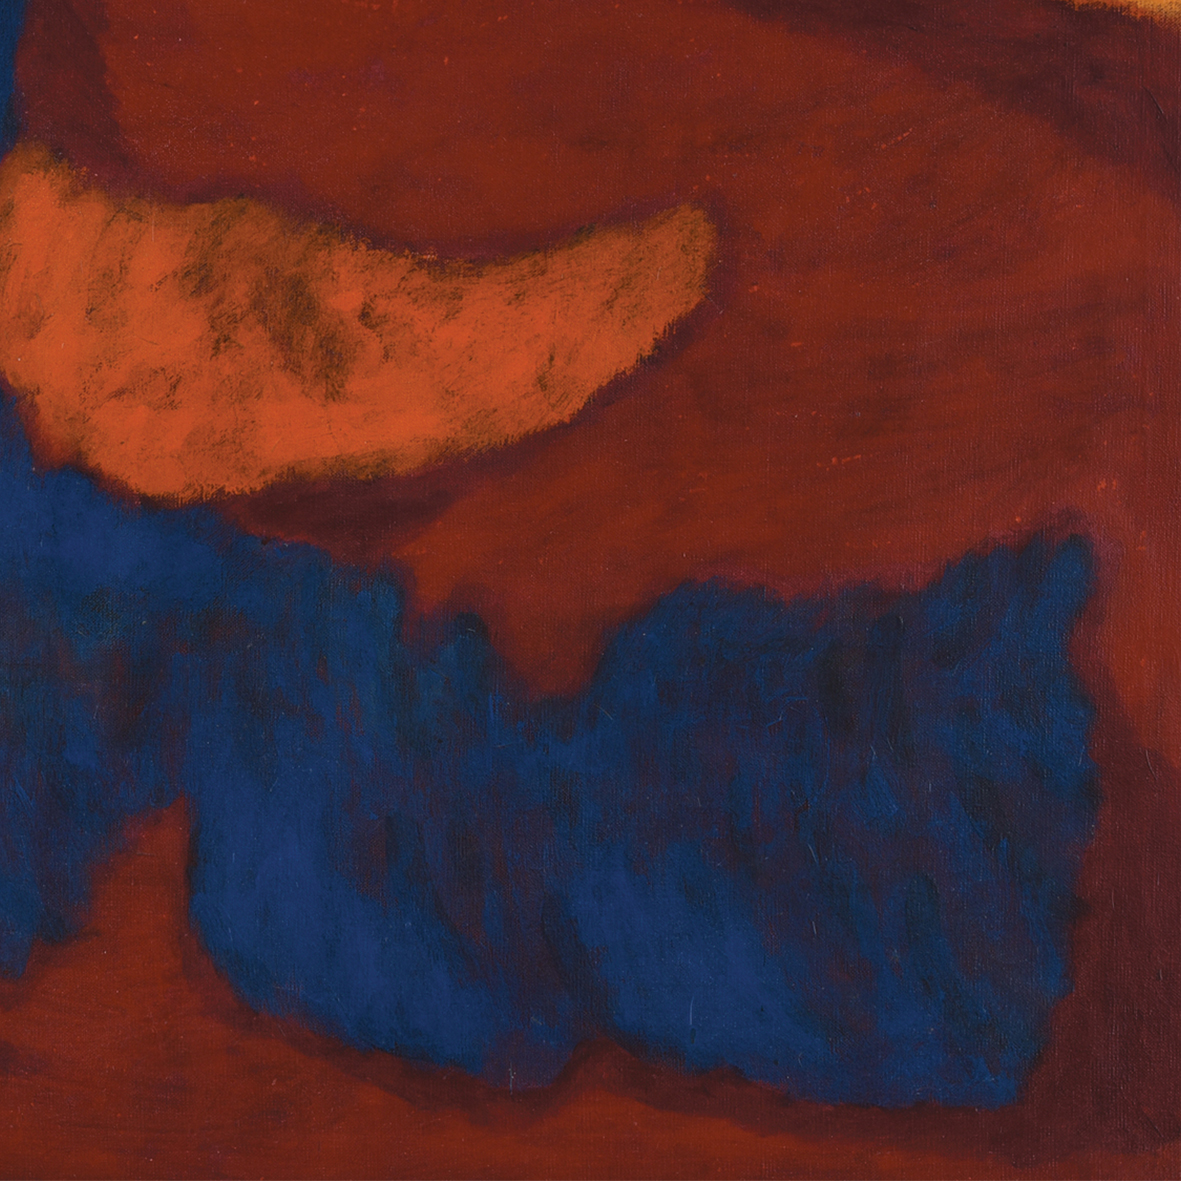 Nashar, Romance, oil on canvas, 61.5 x 89.5 cm, 1986 (detail)